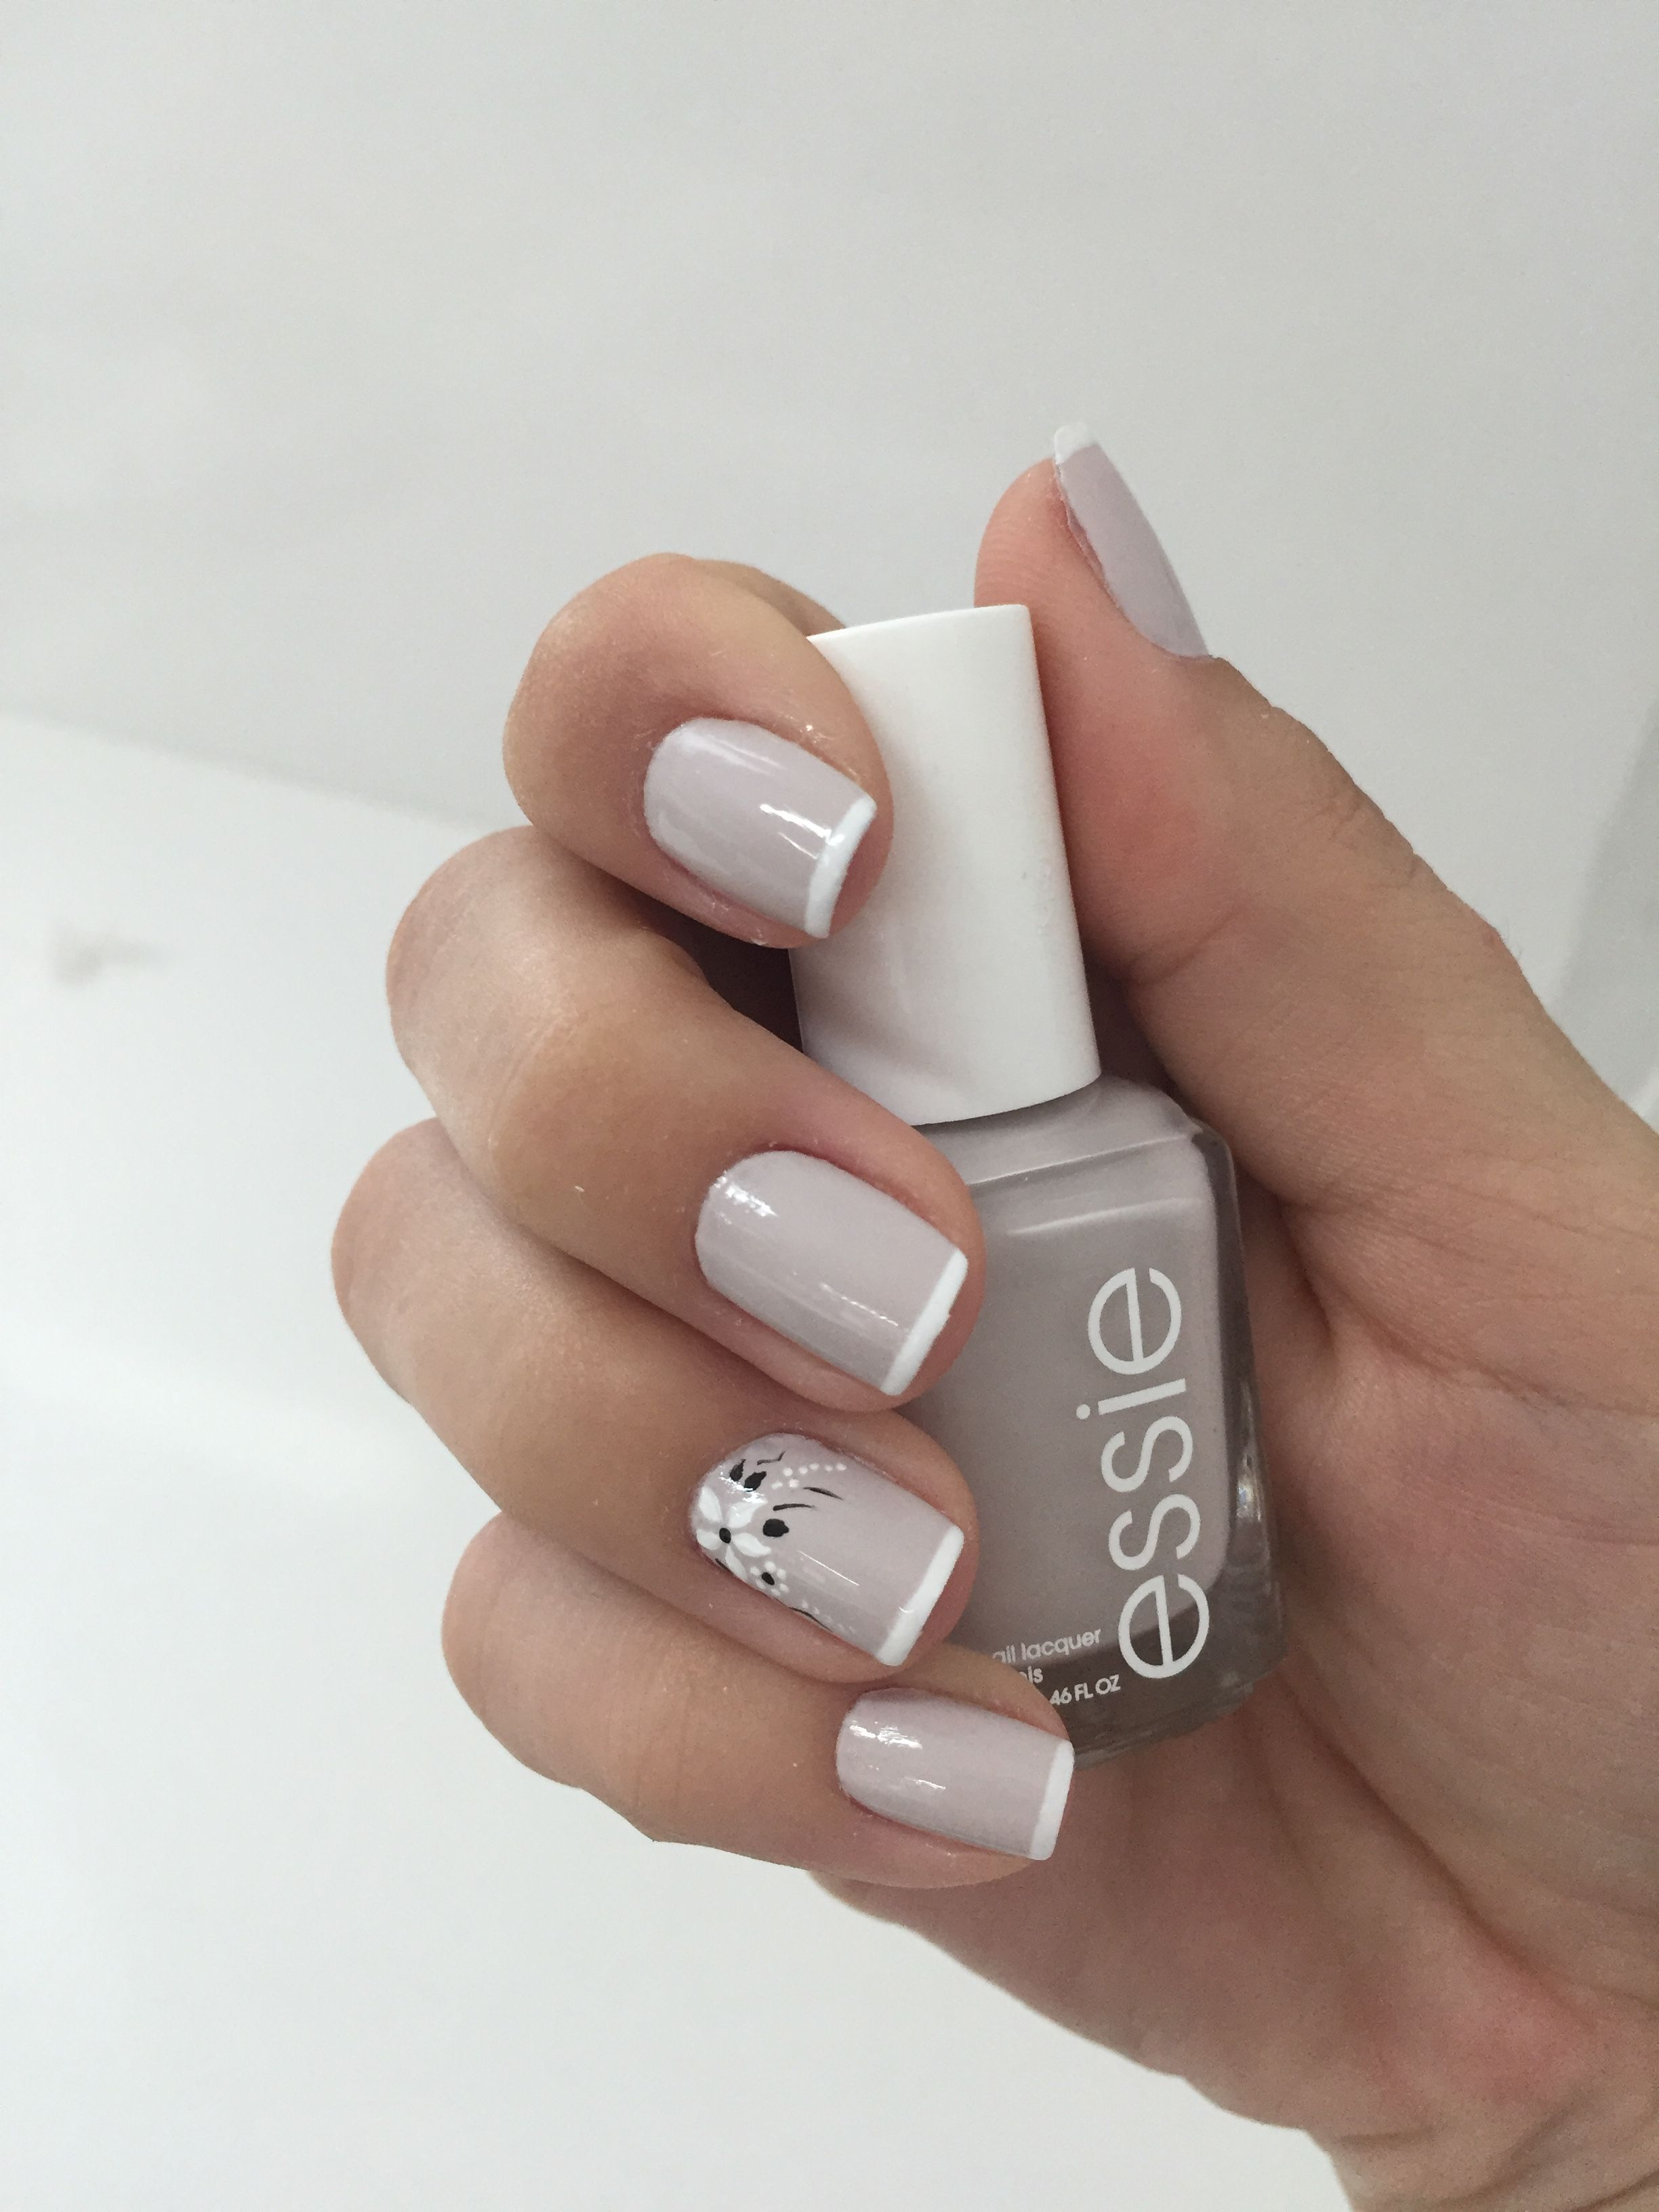 Uñas essie | Manicure and Pedicure | Pinterest | Manicure, Makeup ...